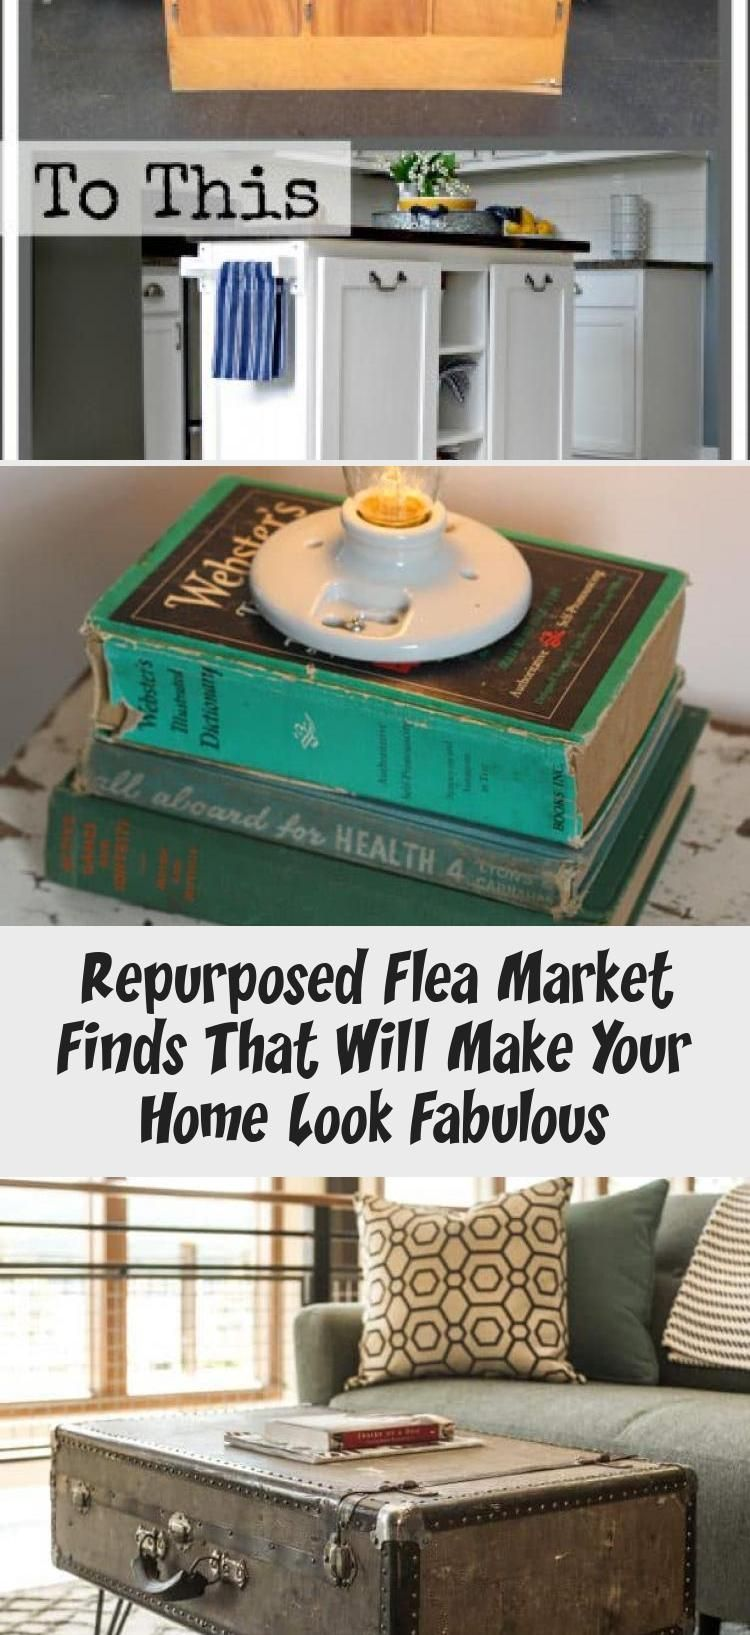 Repurposed Flea Market Finds That Will Make Your Home Look Fabulous  Vintage  Repurposed Flea Market Finds that Will Make Your Home Look Fabulous Best Pictu